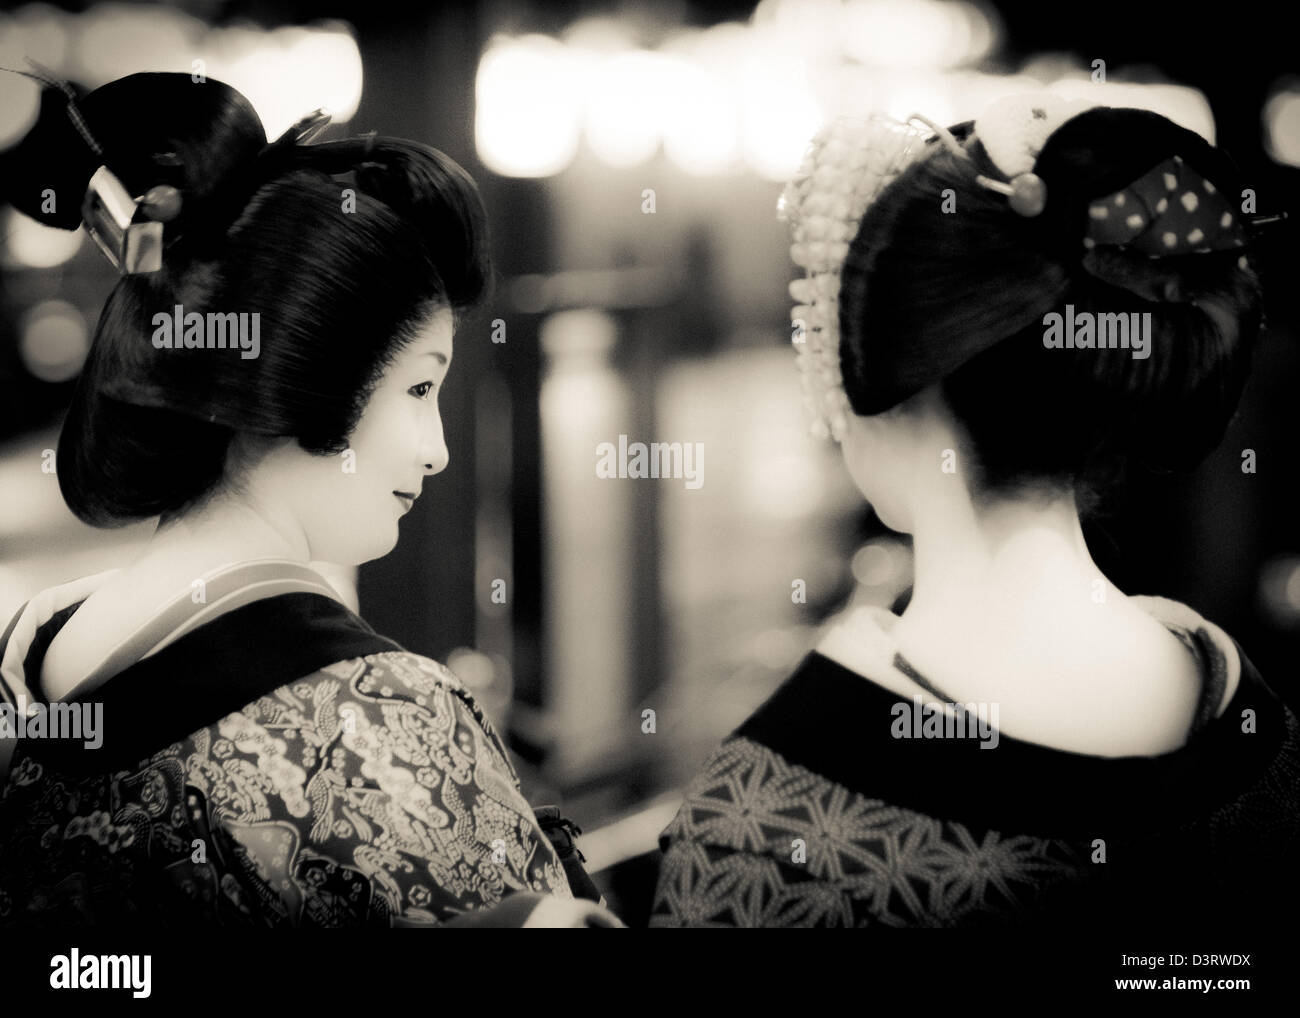 Geishas on the streets of Kyoto, Japan Stock Foto